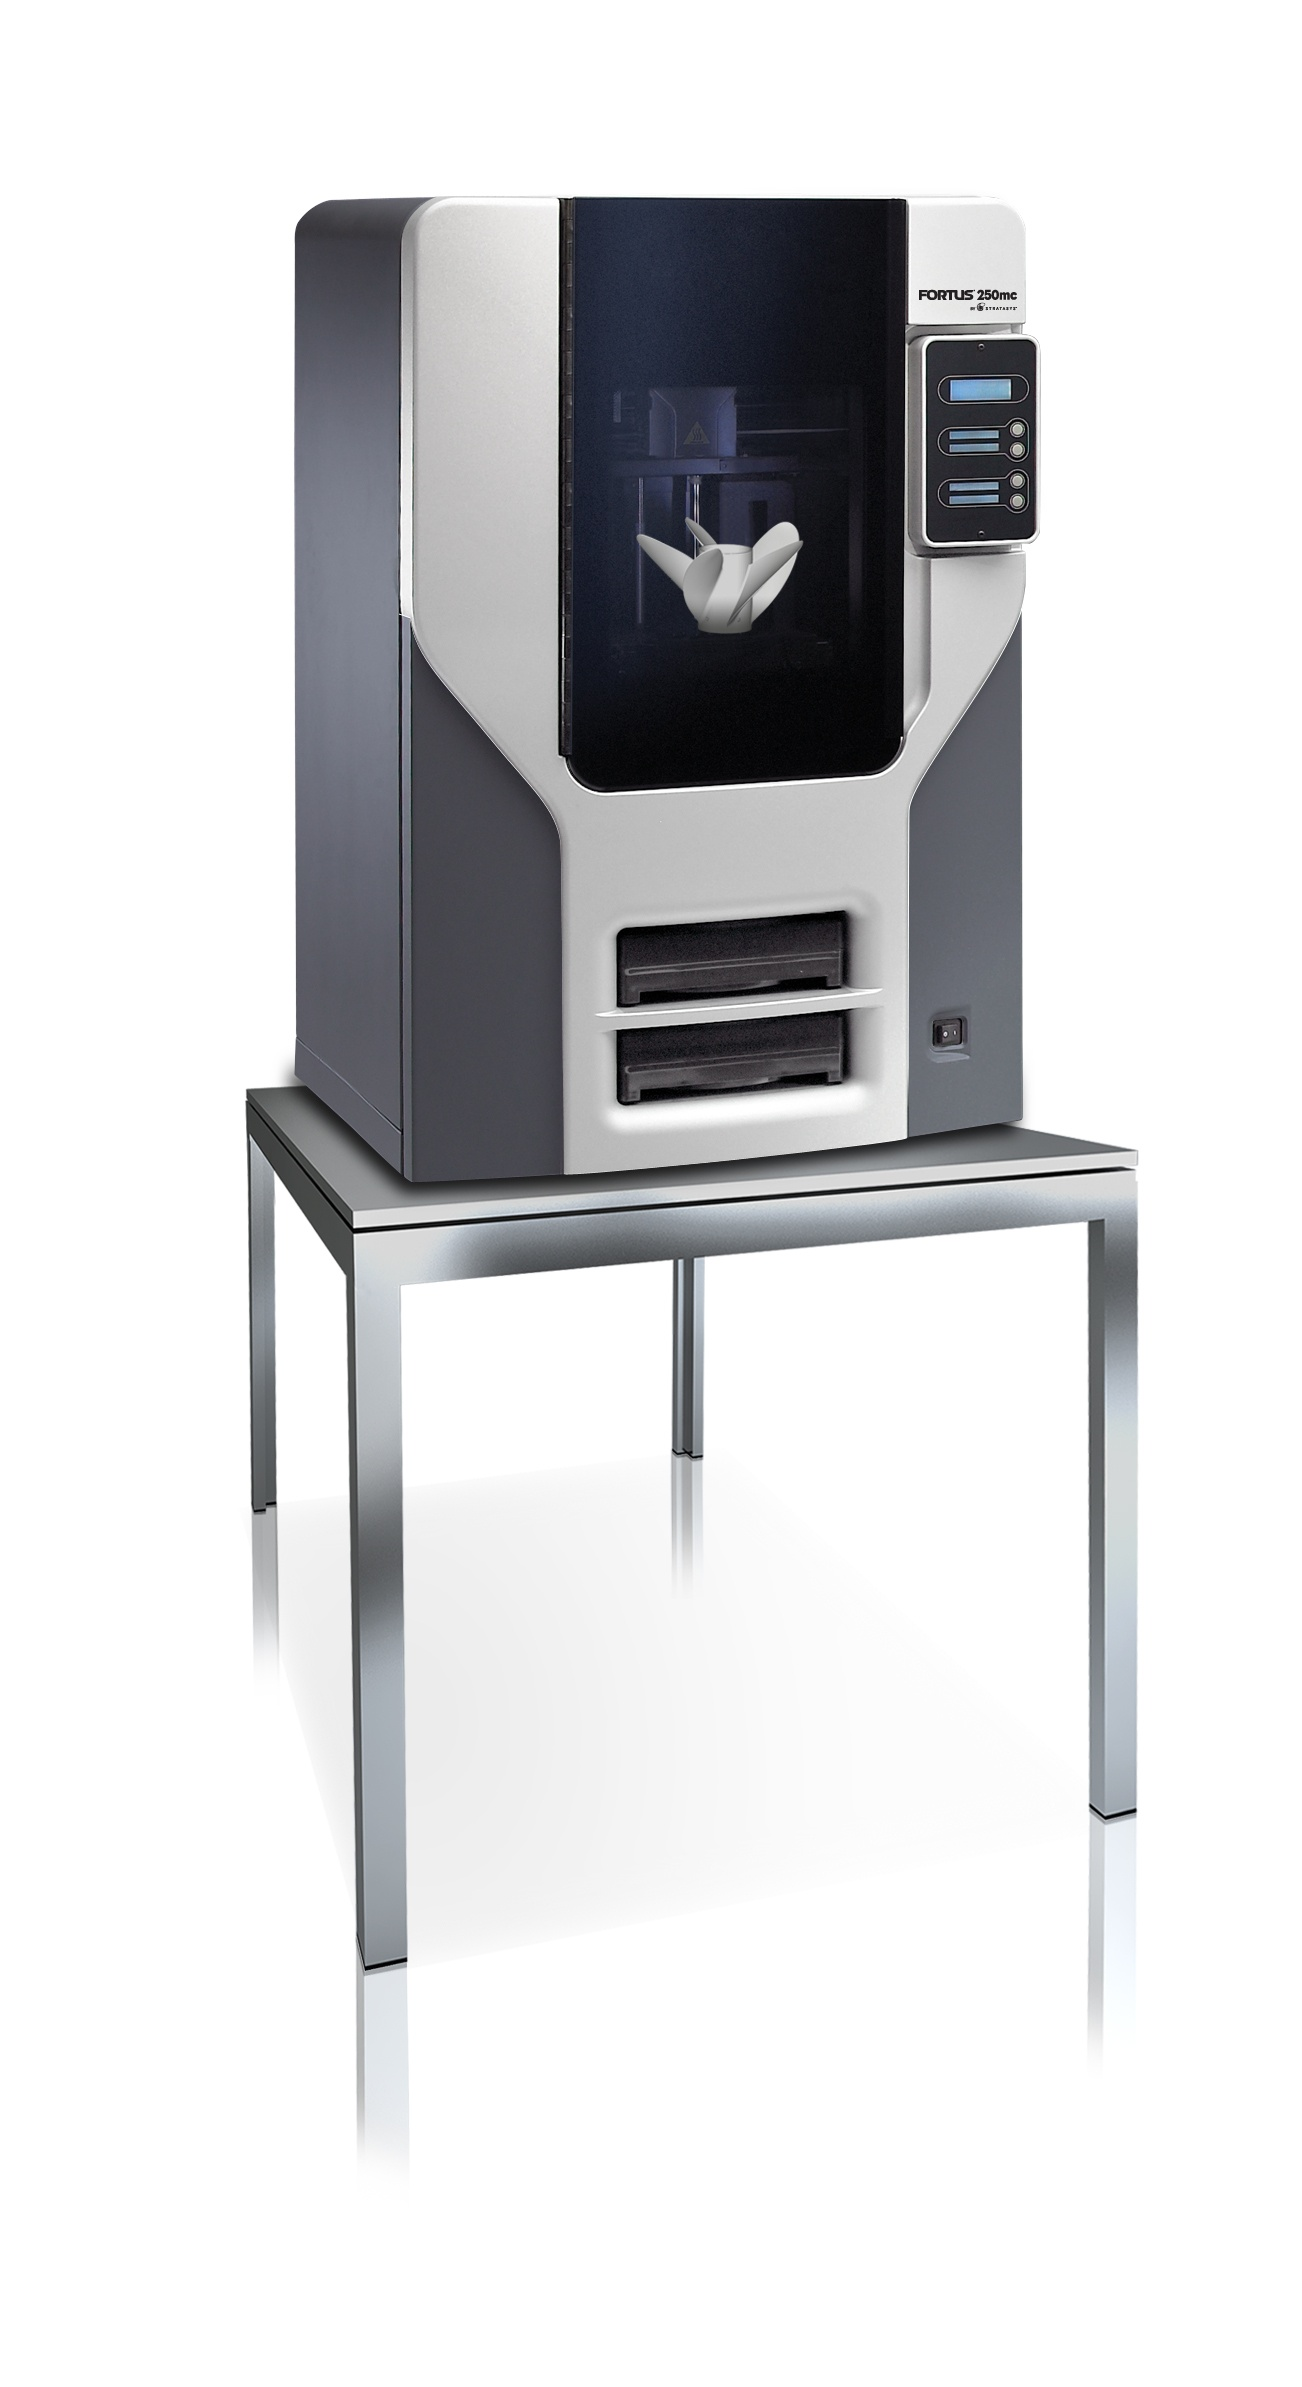 Fortus 250mc production 3D printer